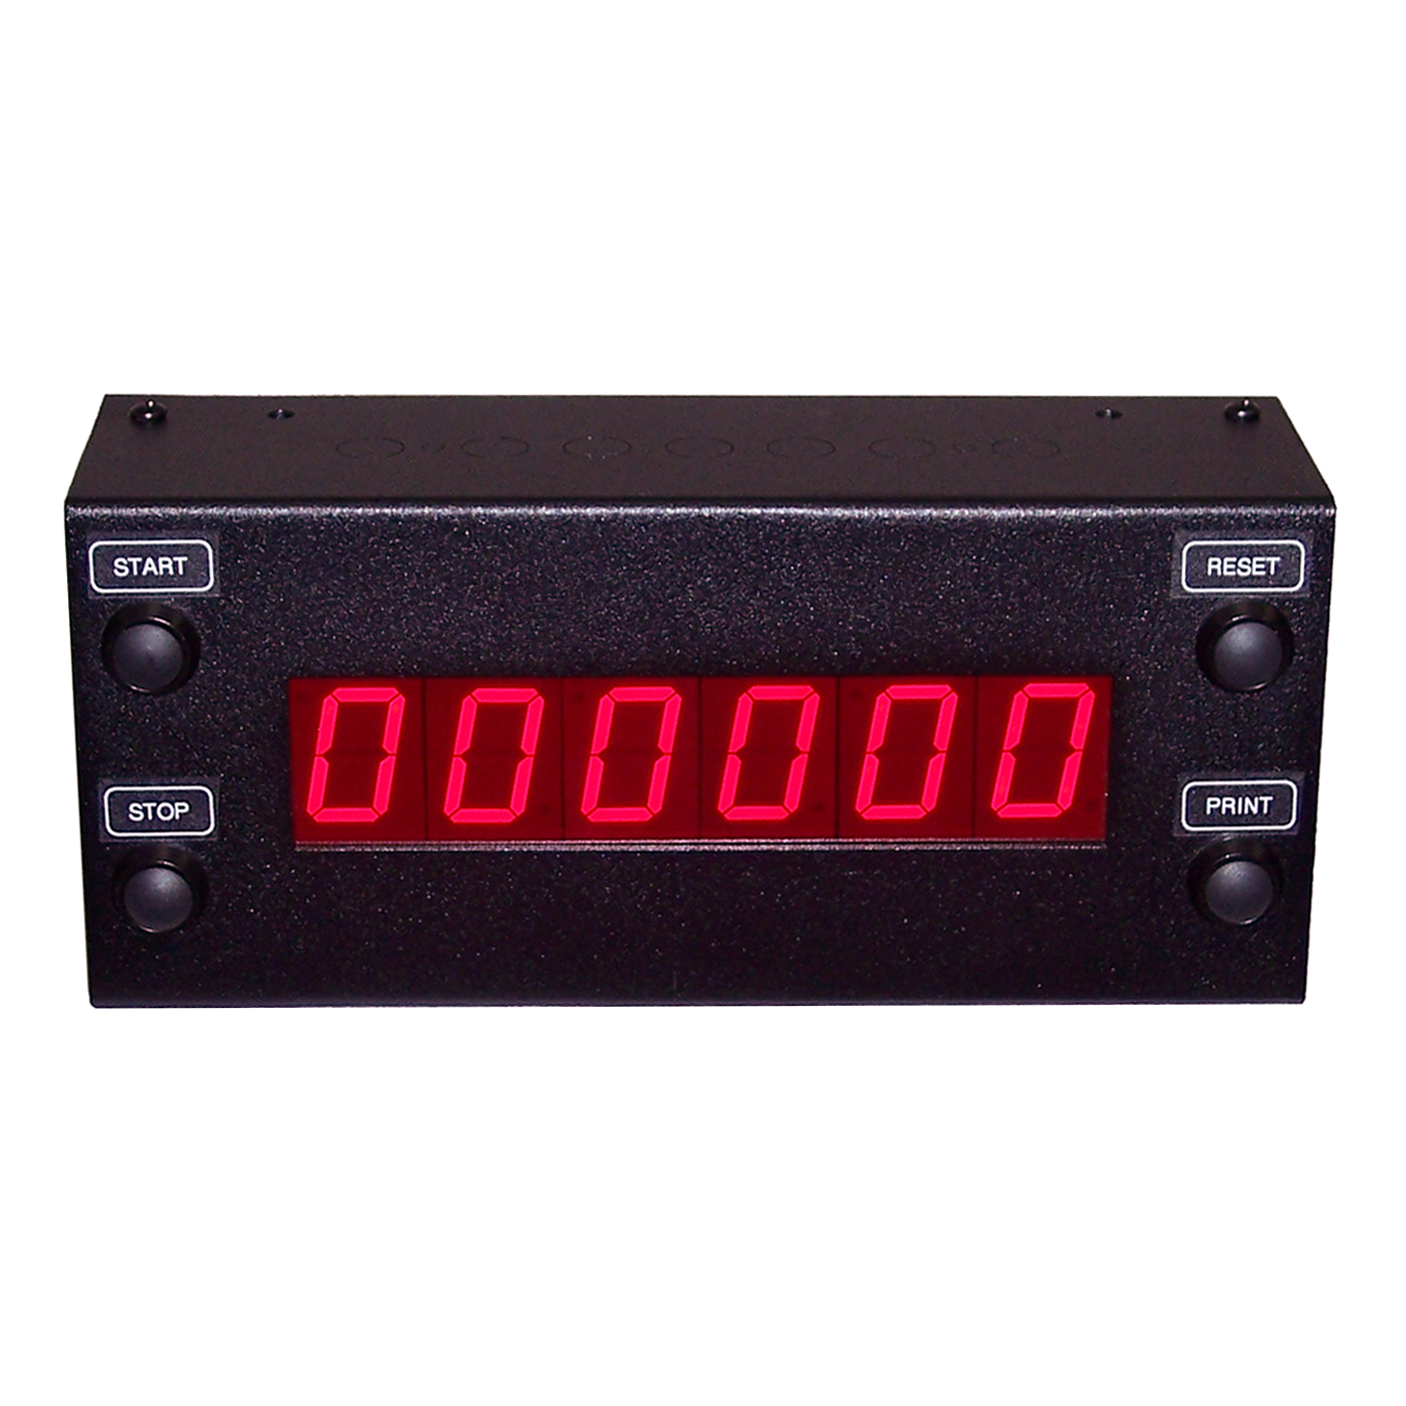 DC-106N-T-UP-STATIC network controlled start, stop, reset, set, and request for time stamp or print, seconds only up to 999999